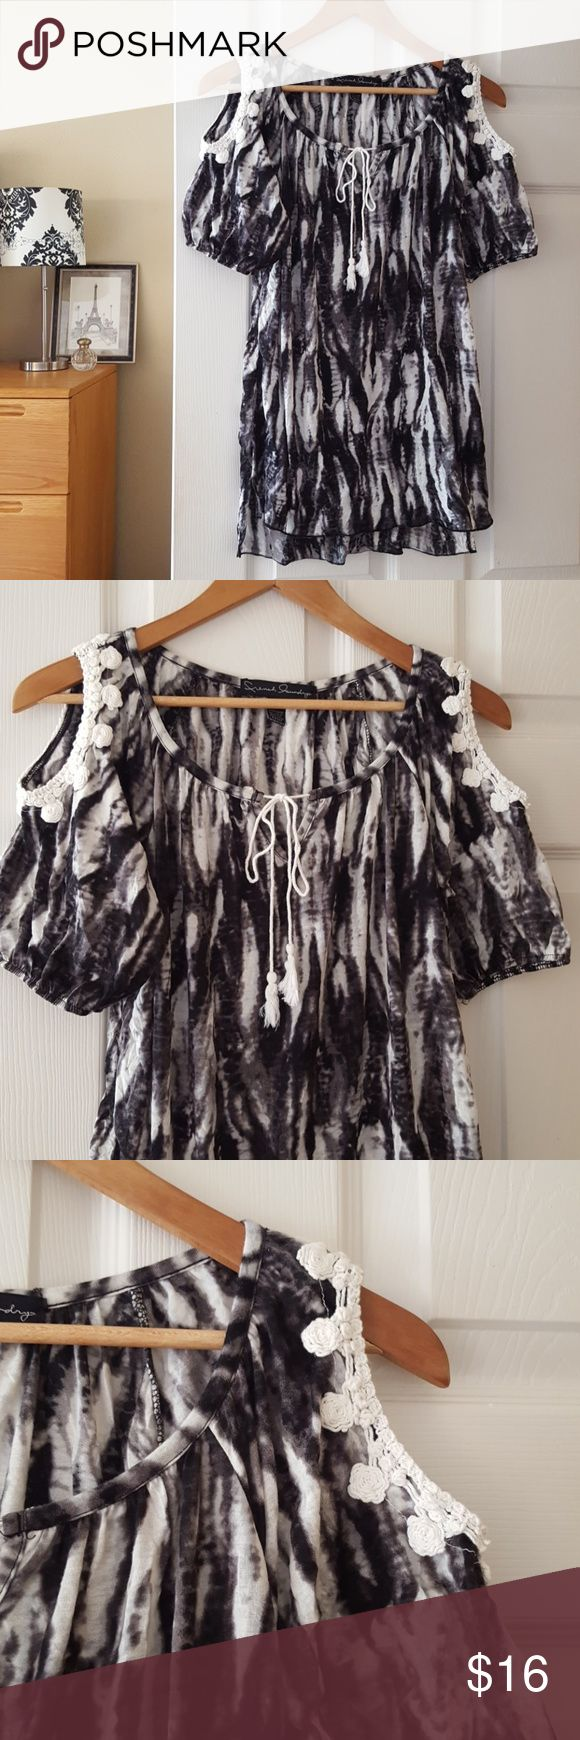 """french laundry cold shoulder boho tunic size S Super cute and comfy tunic top with adorable trim and cold shoulder.  Measurements:   •Width: 18"""" •Length: 26"""" front, 28"""" back •Smoke-free home •100% polyester  -Reasonable offers welcome, but prices are firm on items under $10.  -No trades, please.  Thank you for shopping my closet, it means a lot to me! French Laundry Tops Tunics"""